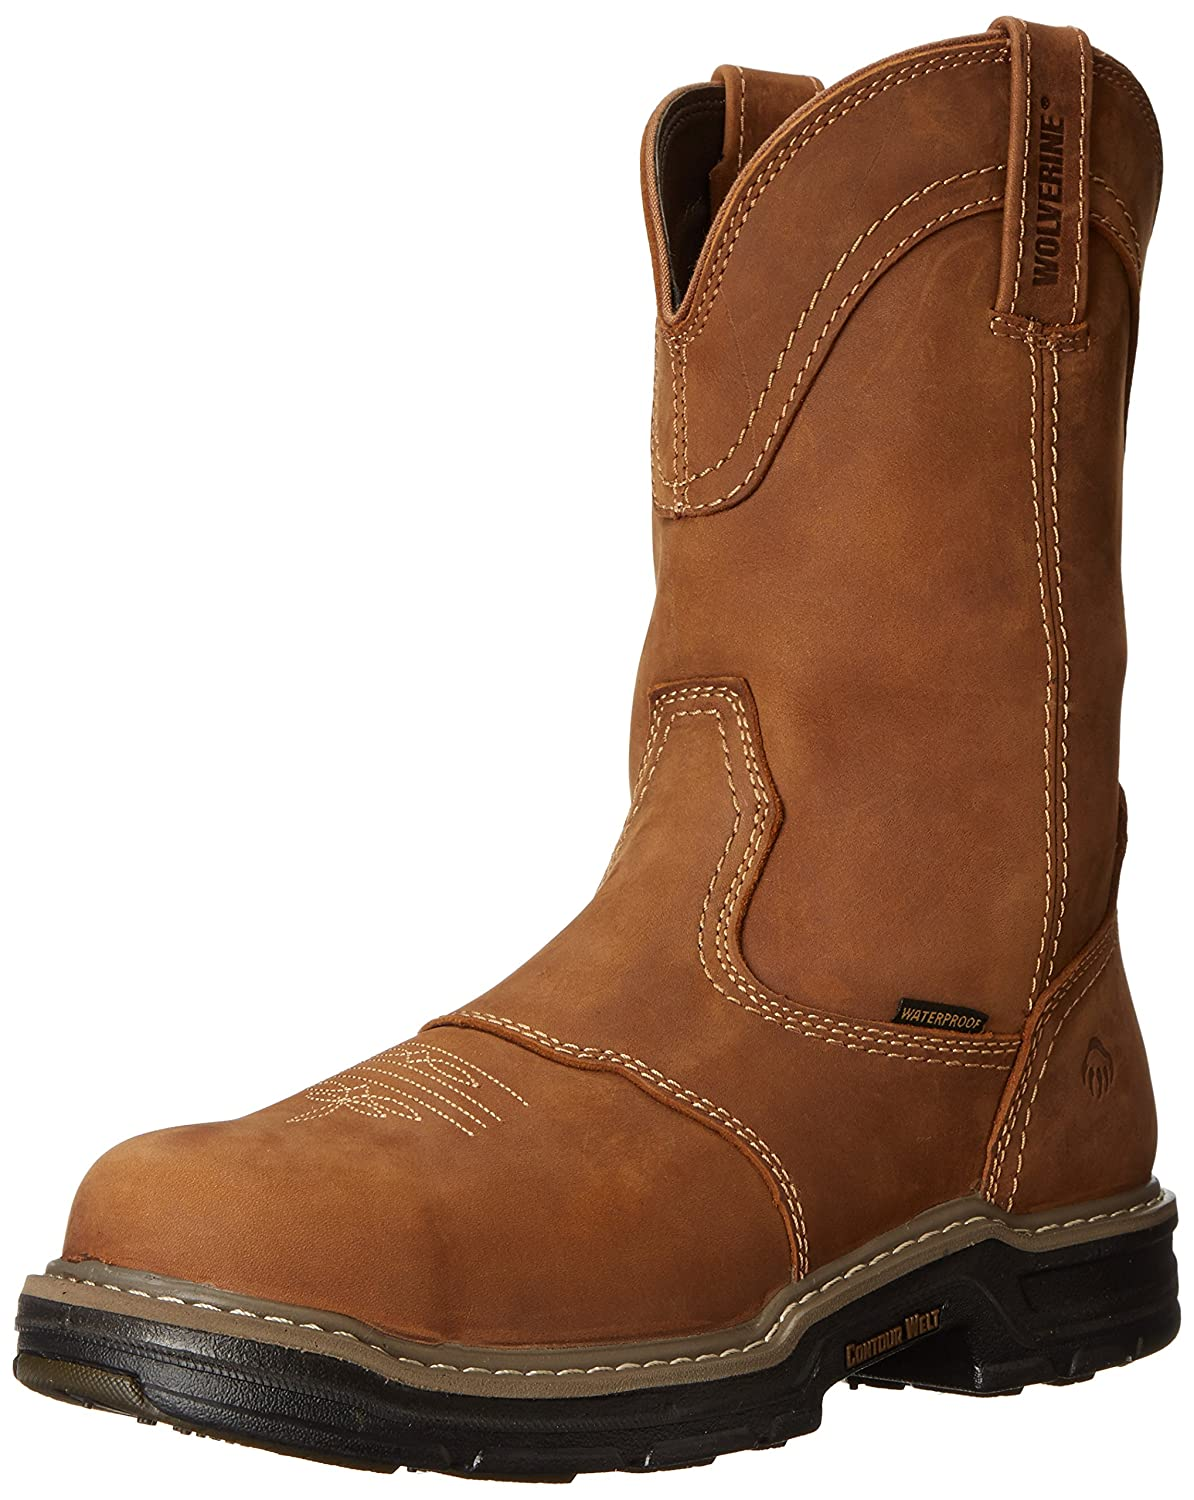 182c3a9324d Wolverine Men's Anthem Western Wellington Steel-Toe Work Boot